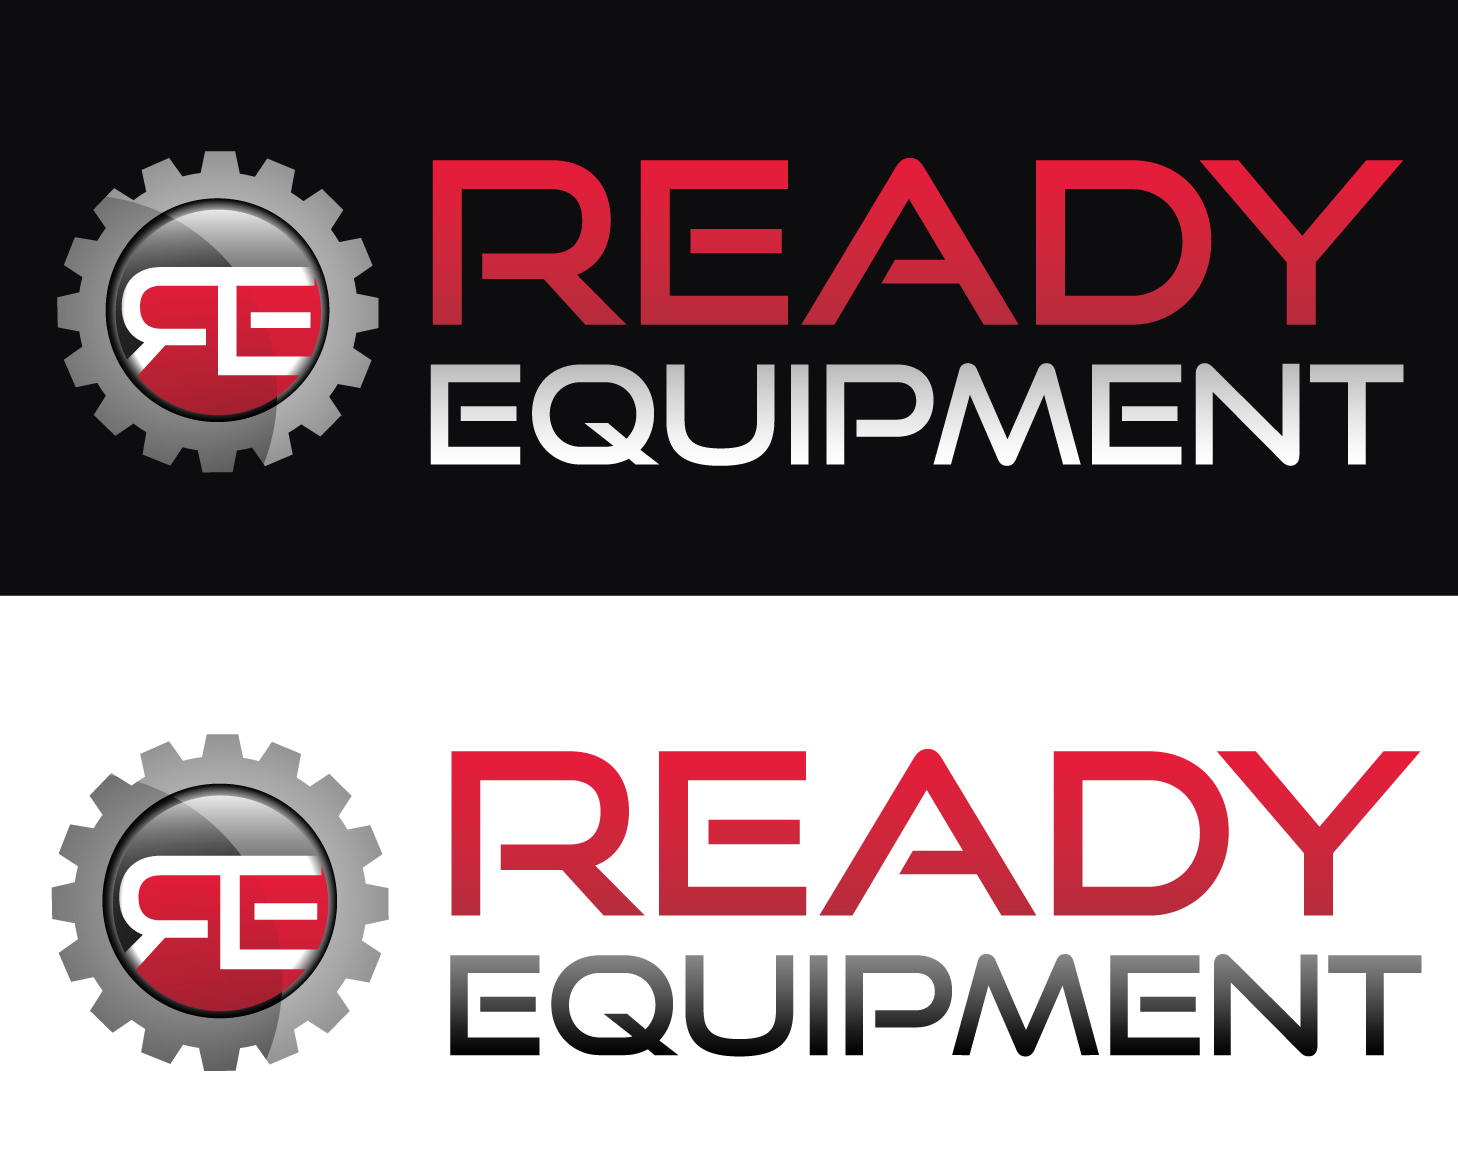 Logo Design by rA - Entry No. 170 in the Logo Design Contest Ready Equipment  Logo Design.